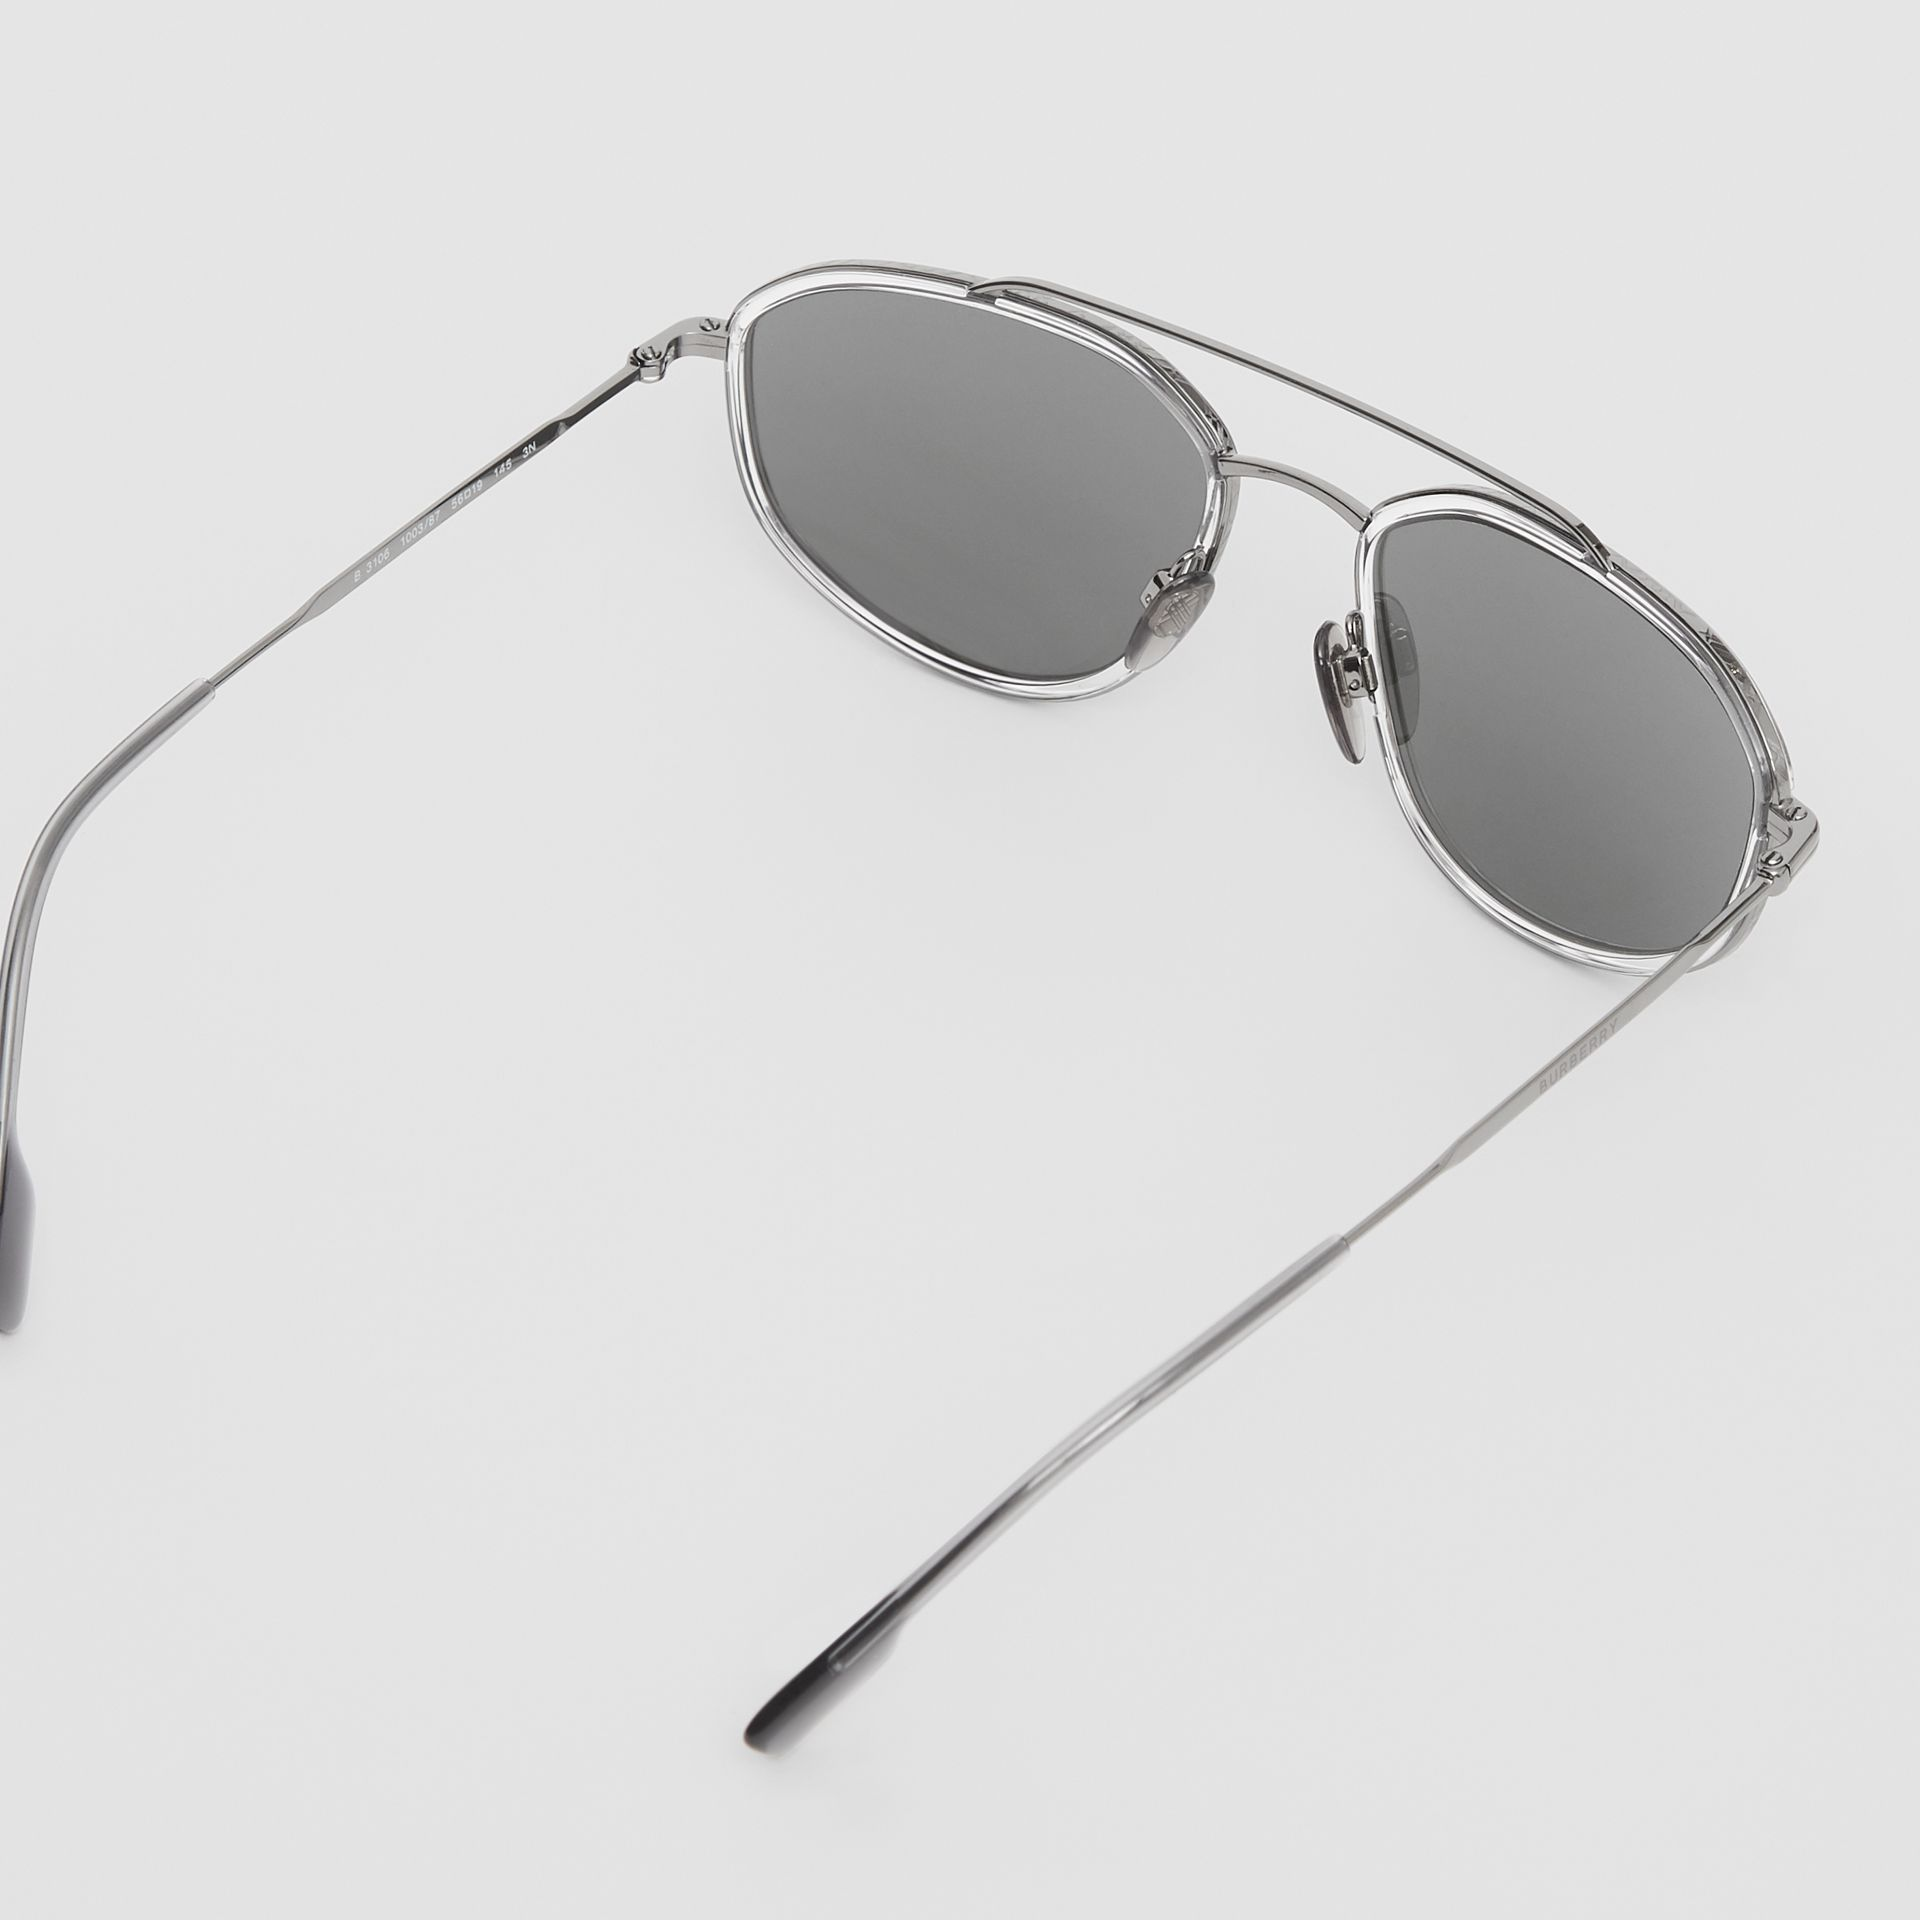 Geometric Navigator Sunglasses in Gunmetal Grey - Men | Burberry United States - gallery image 3